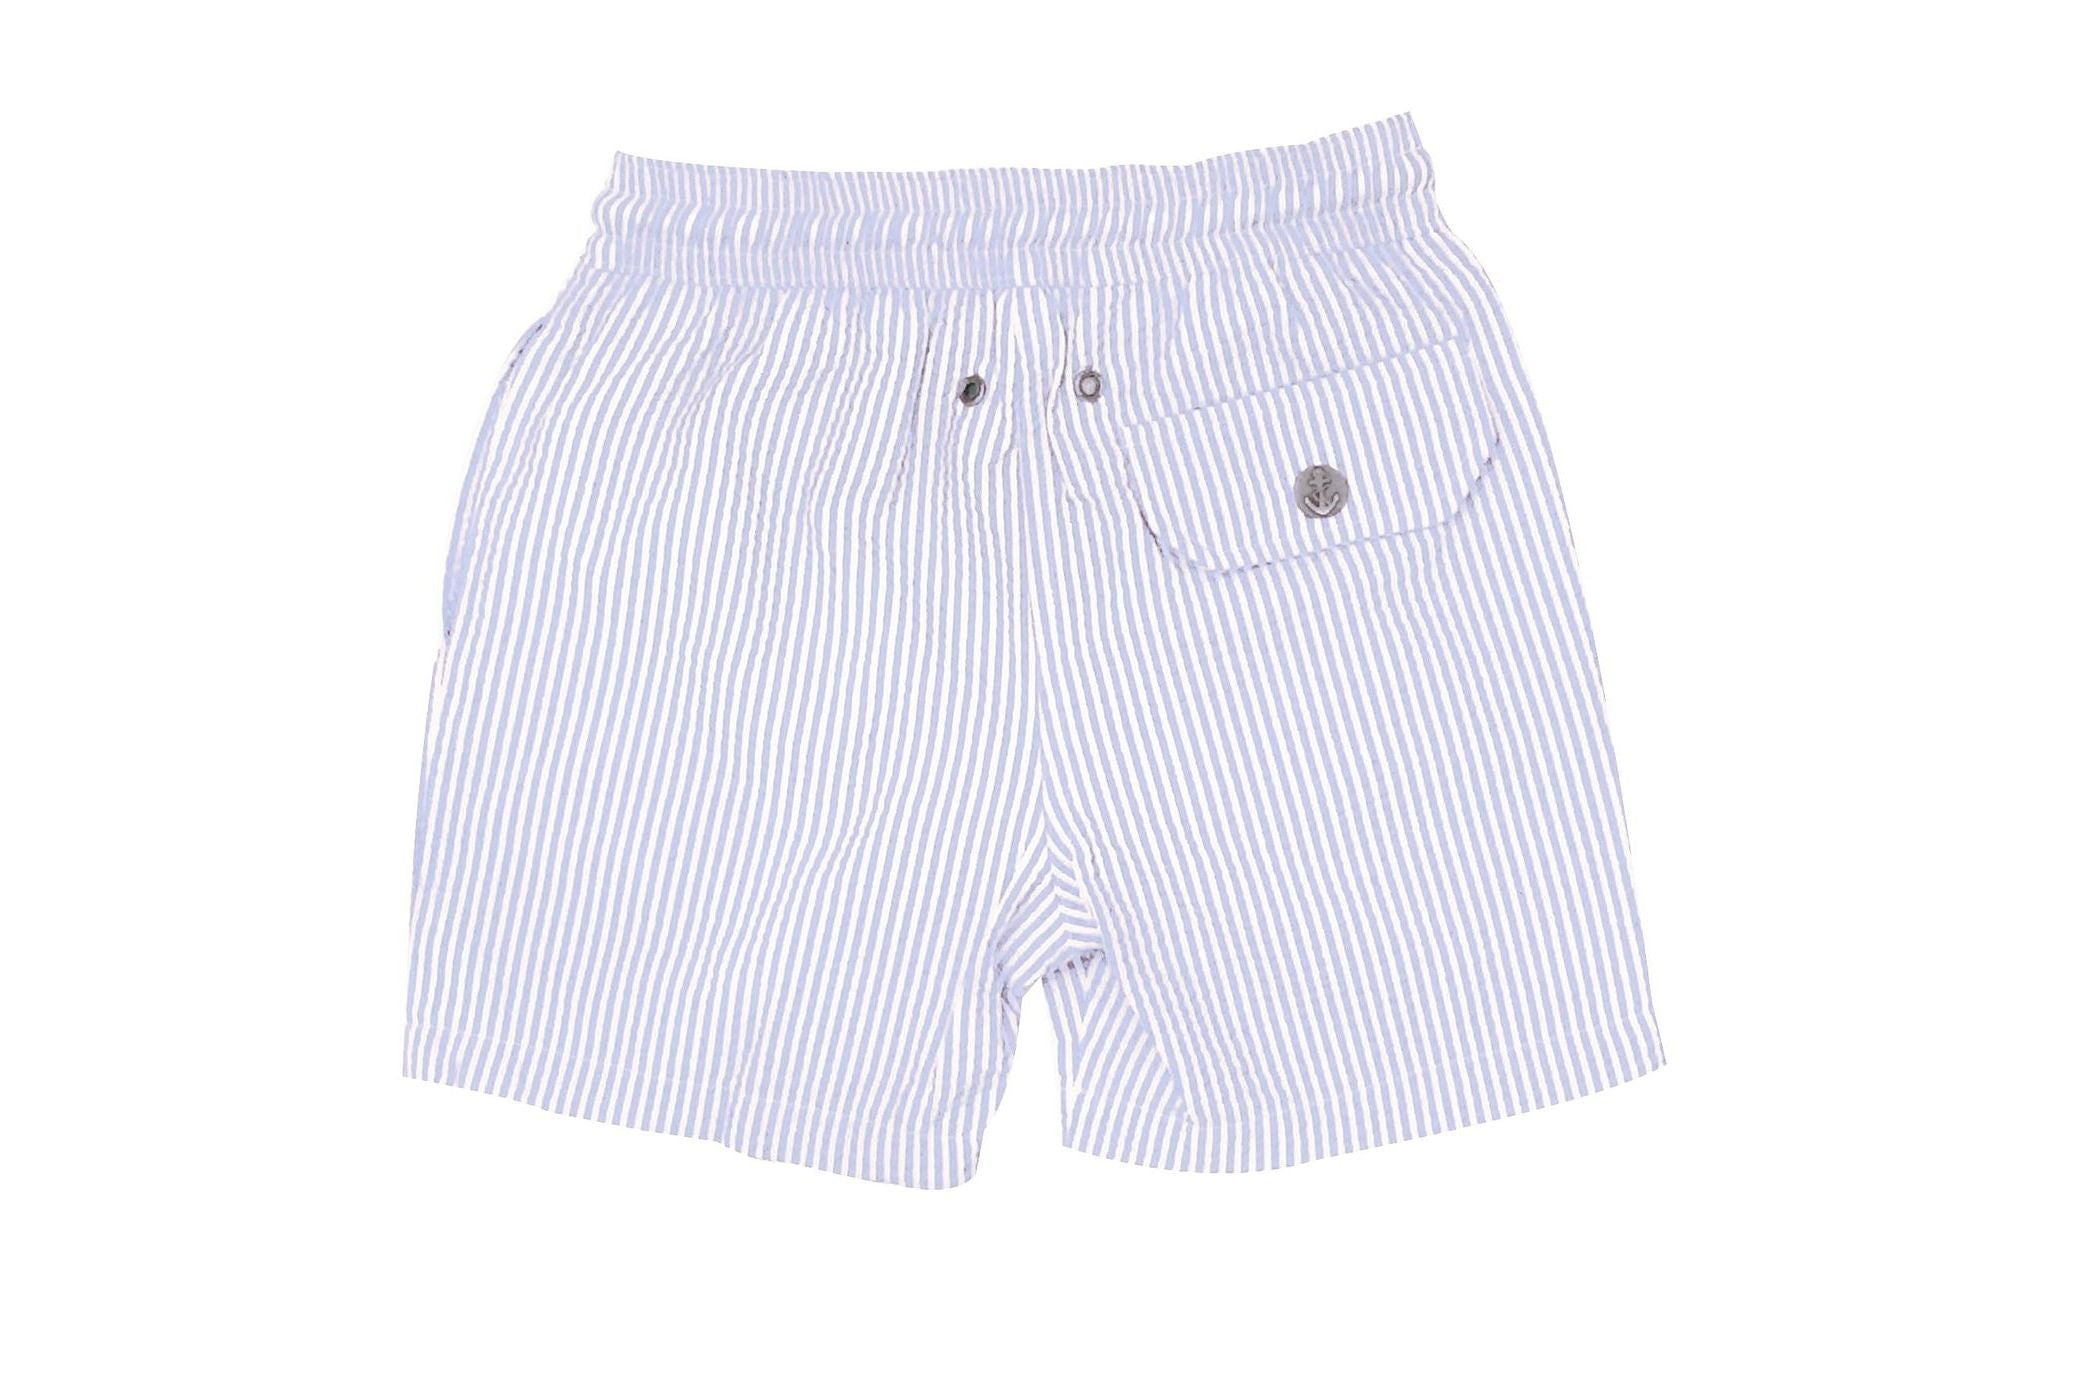 Swimwear Trunk Seer Sucker Light Grey Hybrid